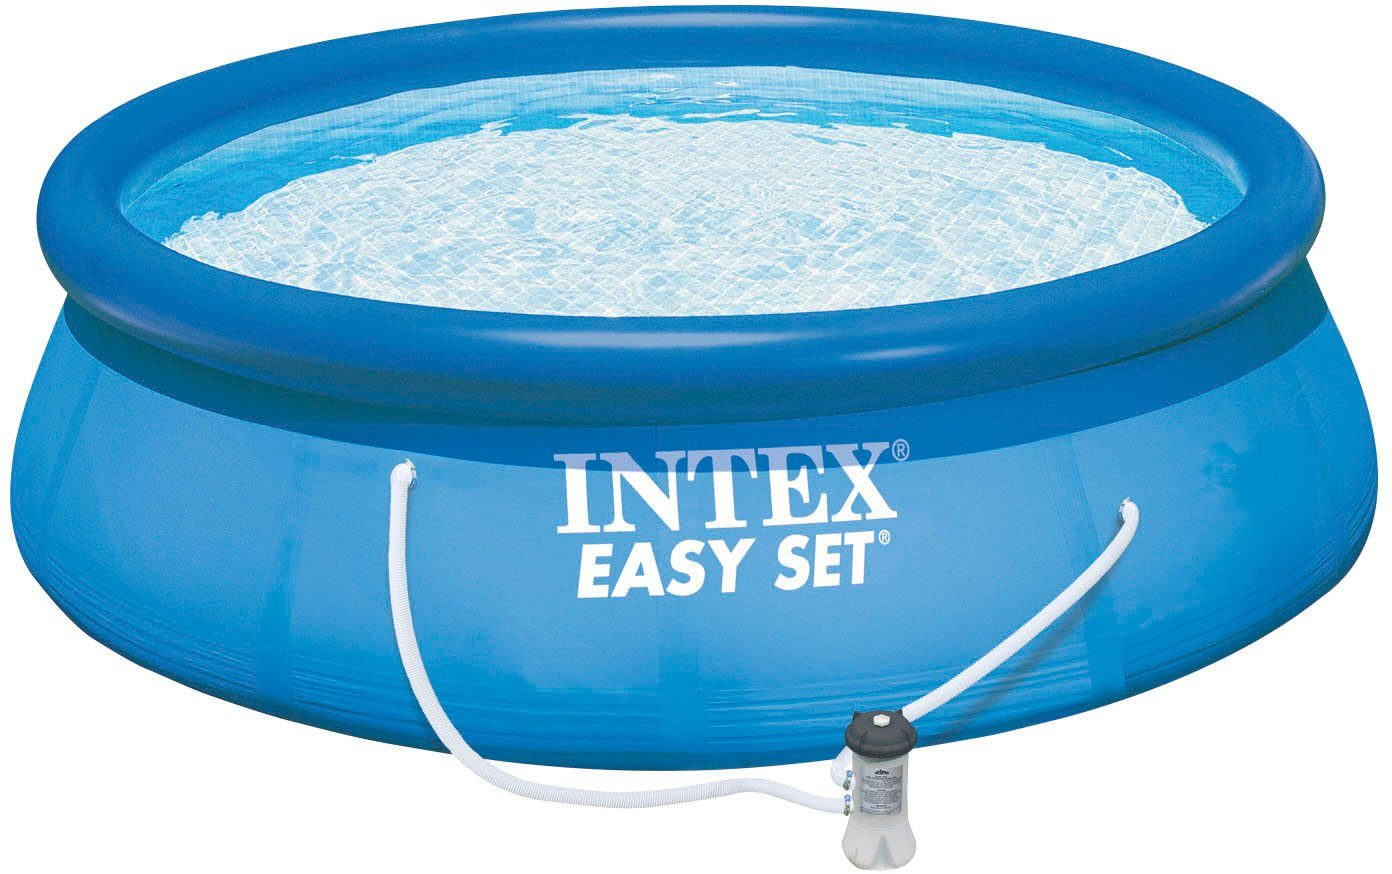 Intex Pool-Set, mit Kartuschenfilteranlage, Ø 366 cm, »Easy Set Pool-Set«